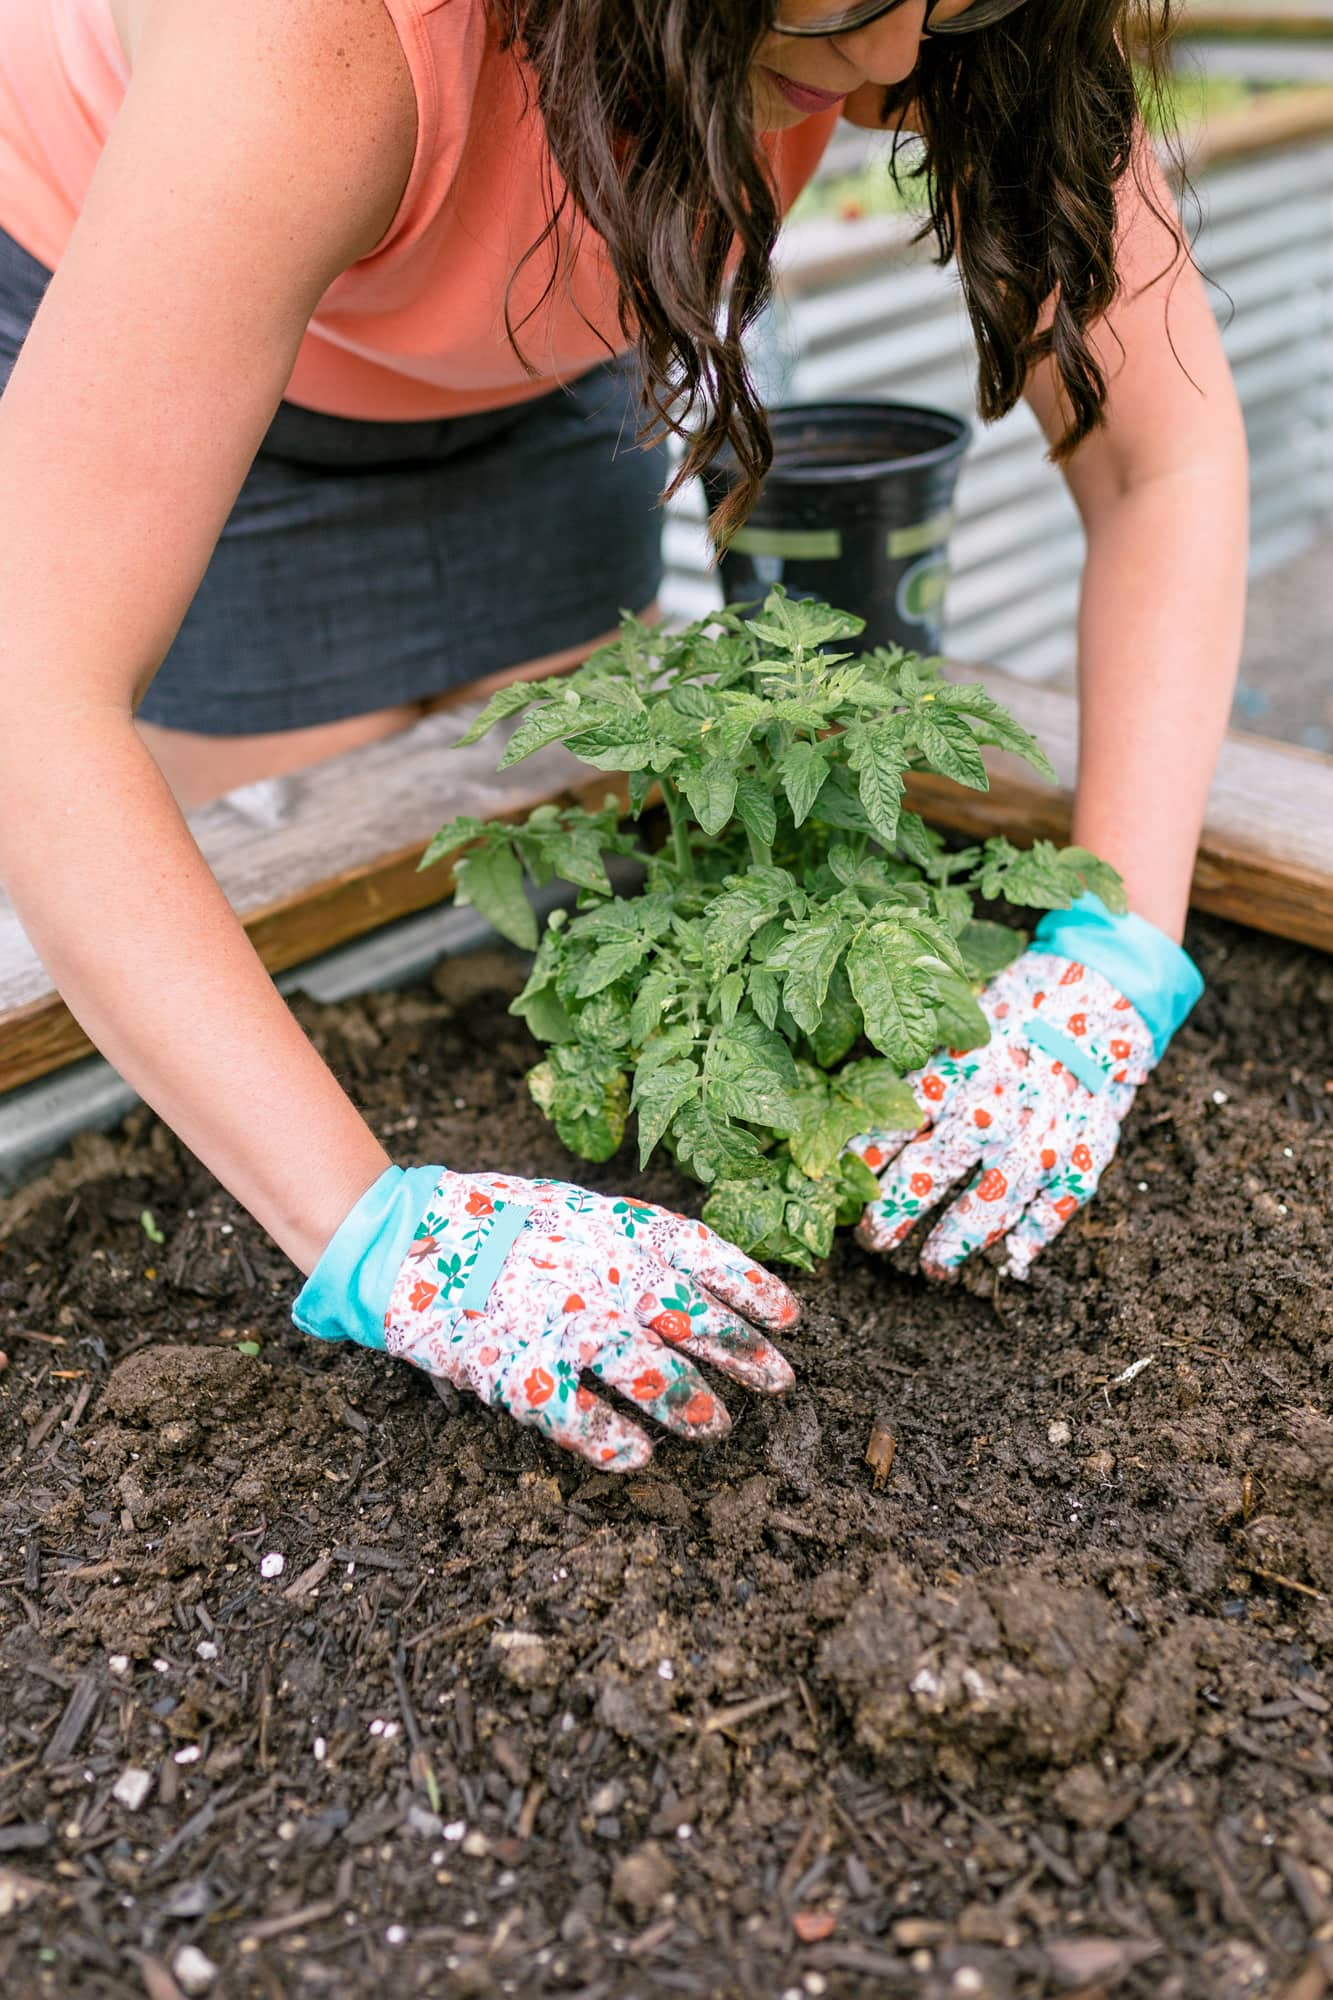 Woman in gardening gloves putting a tomato seedling into the ground for her organic vegetable garden.